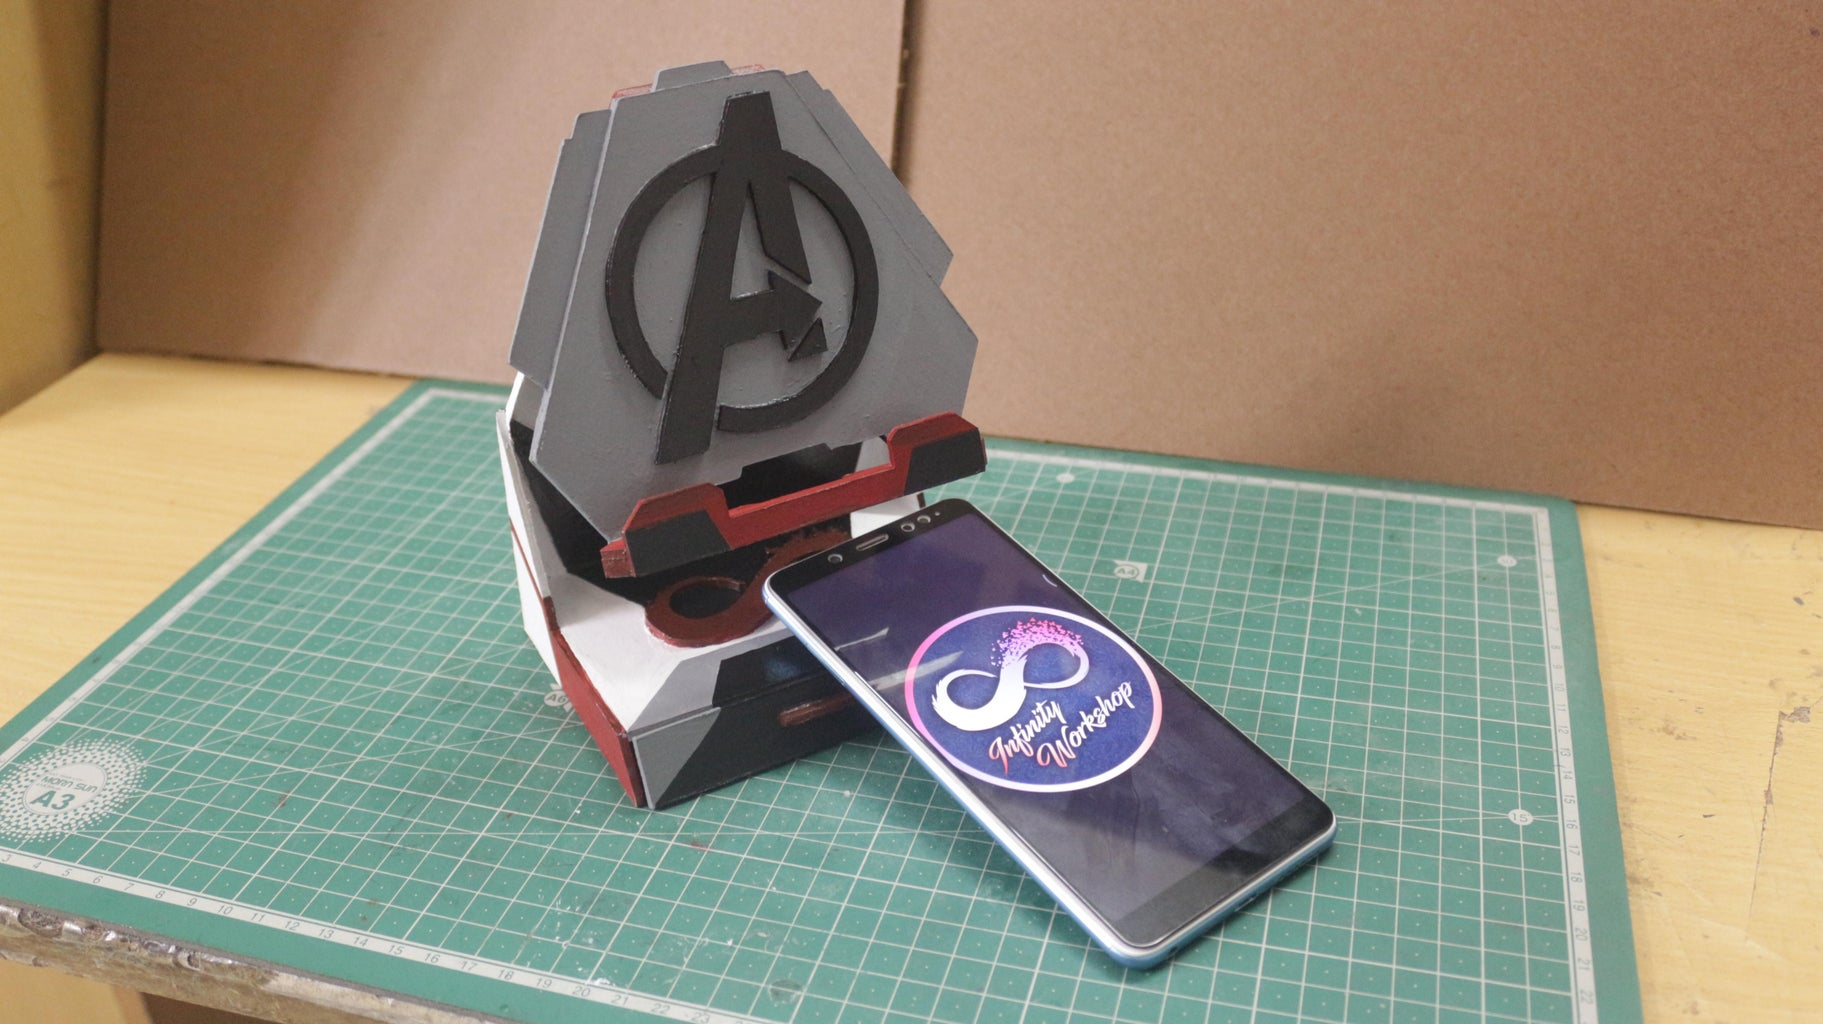 Easy Avengers Smartphone Stand